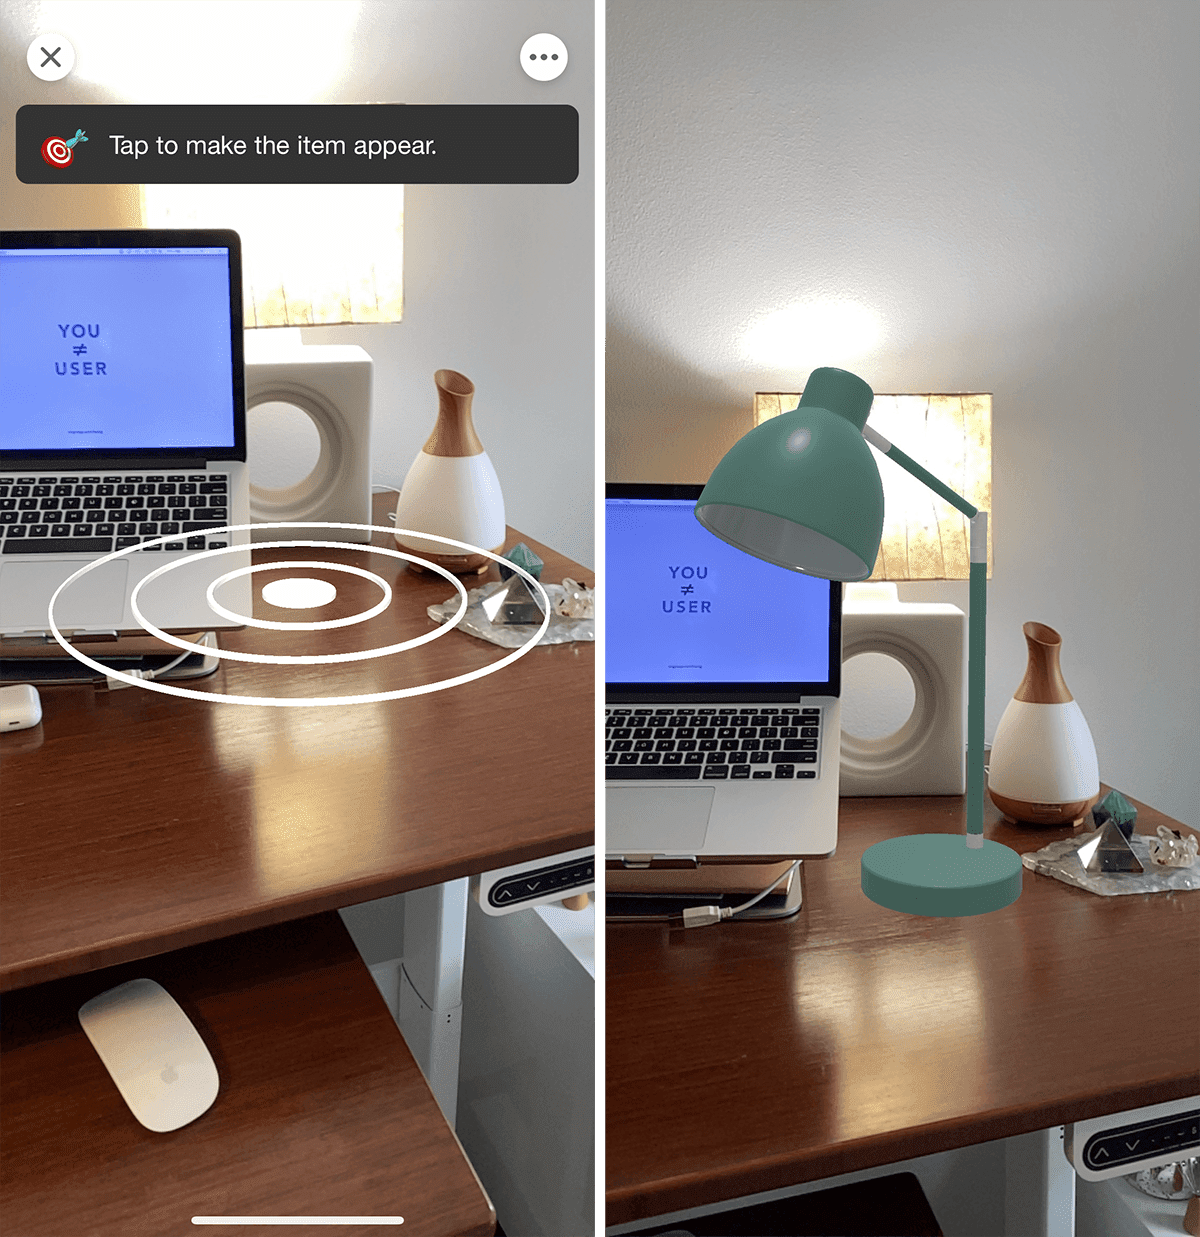 2 screenshots of AR tool: 1 showing white circles indicating where a virtual item would be placed on a desk; and 1 showing the virtual lamp on a desk.